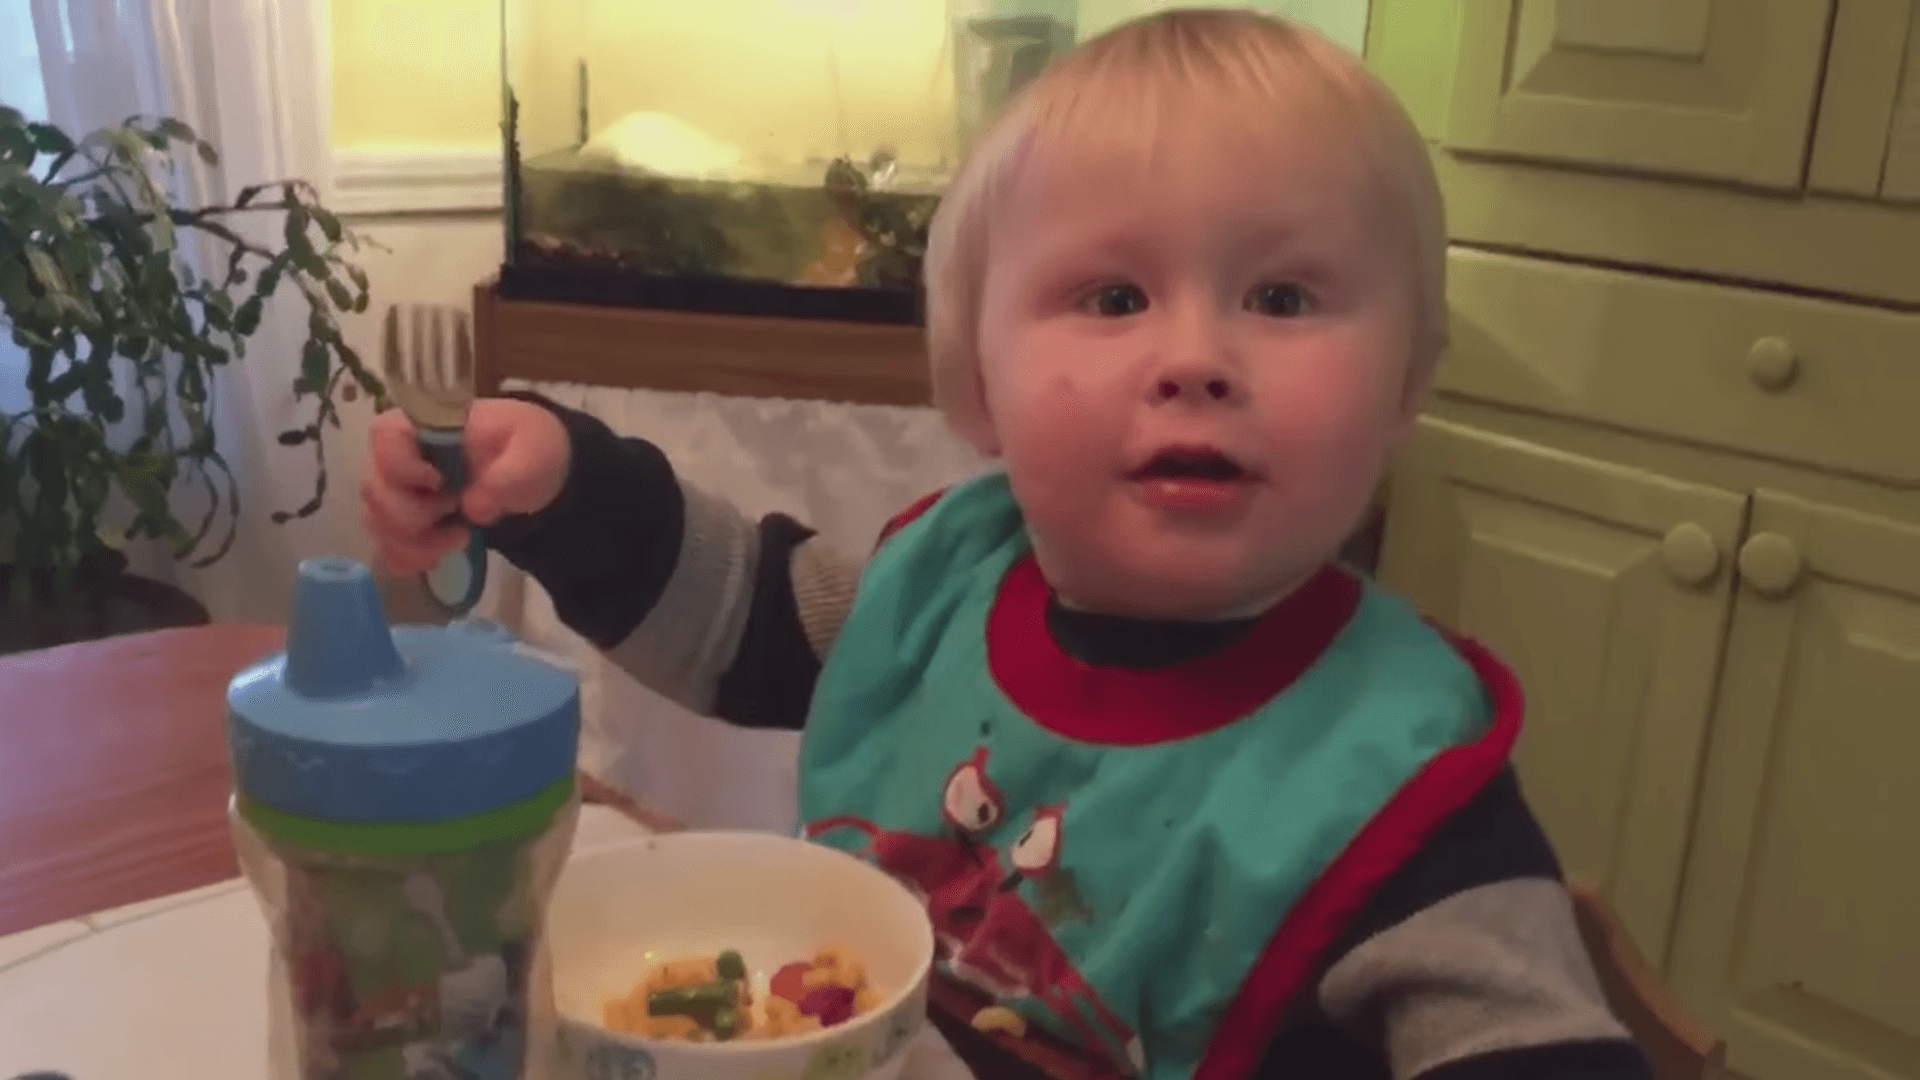 This frustrated baby is unable to find the fork that's right there in his hand.